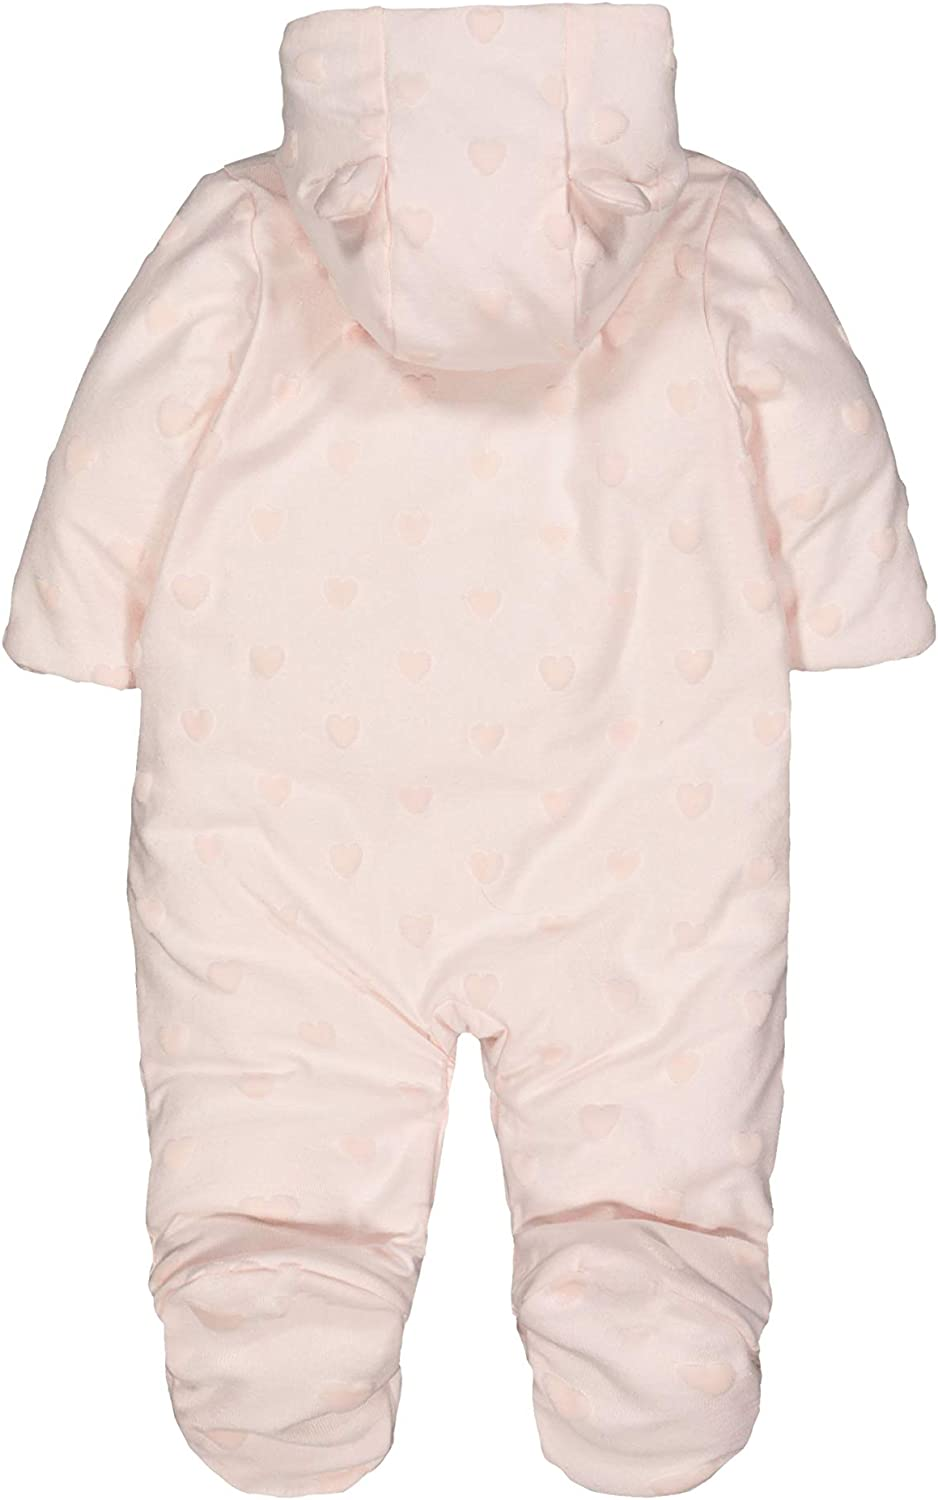 Mothercare Baby Nb Novelty Velour Pramsuit Clothing Set